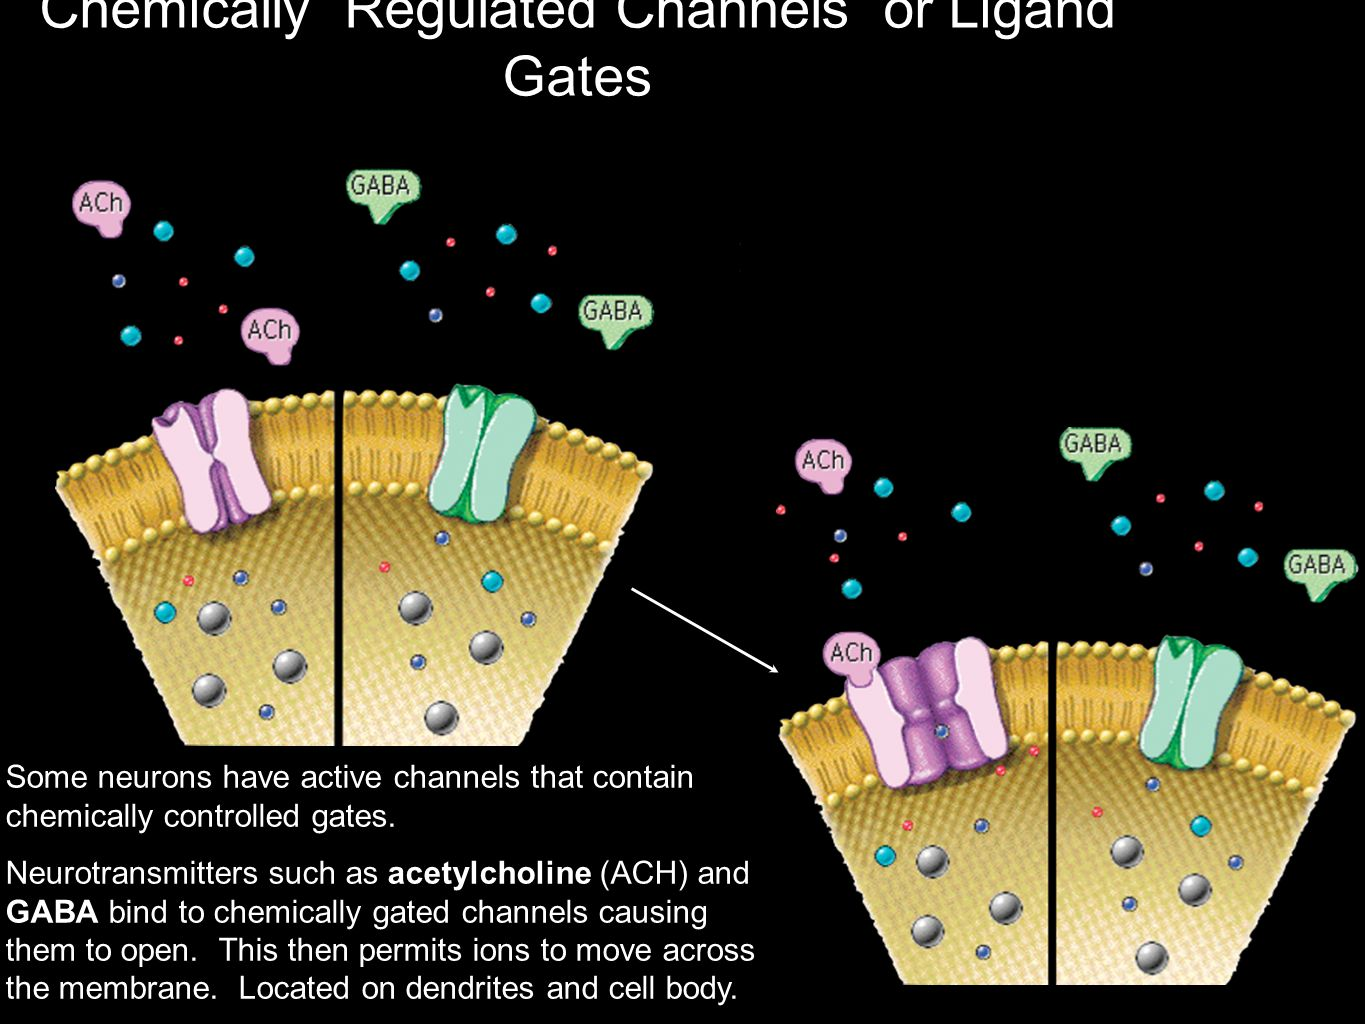 Chemically Regulated Channels or Ligand Gates